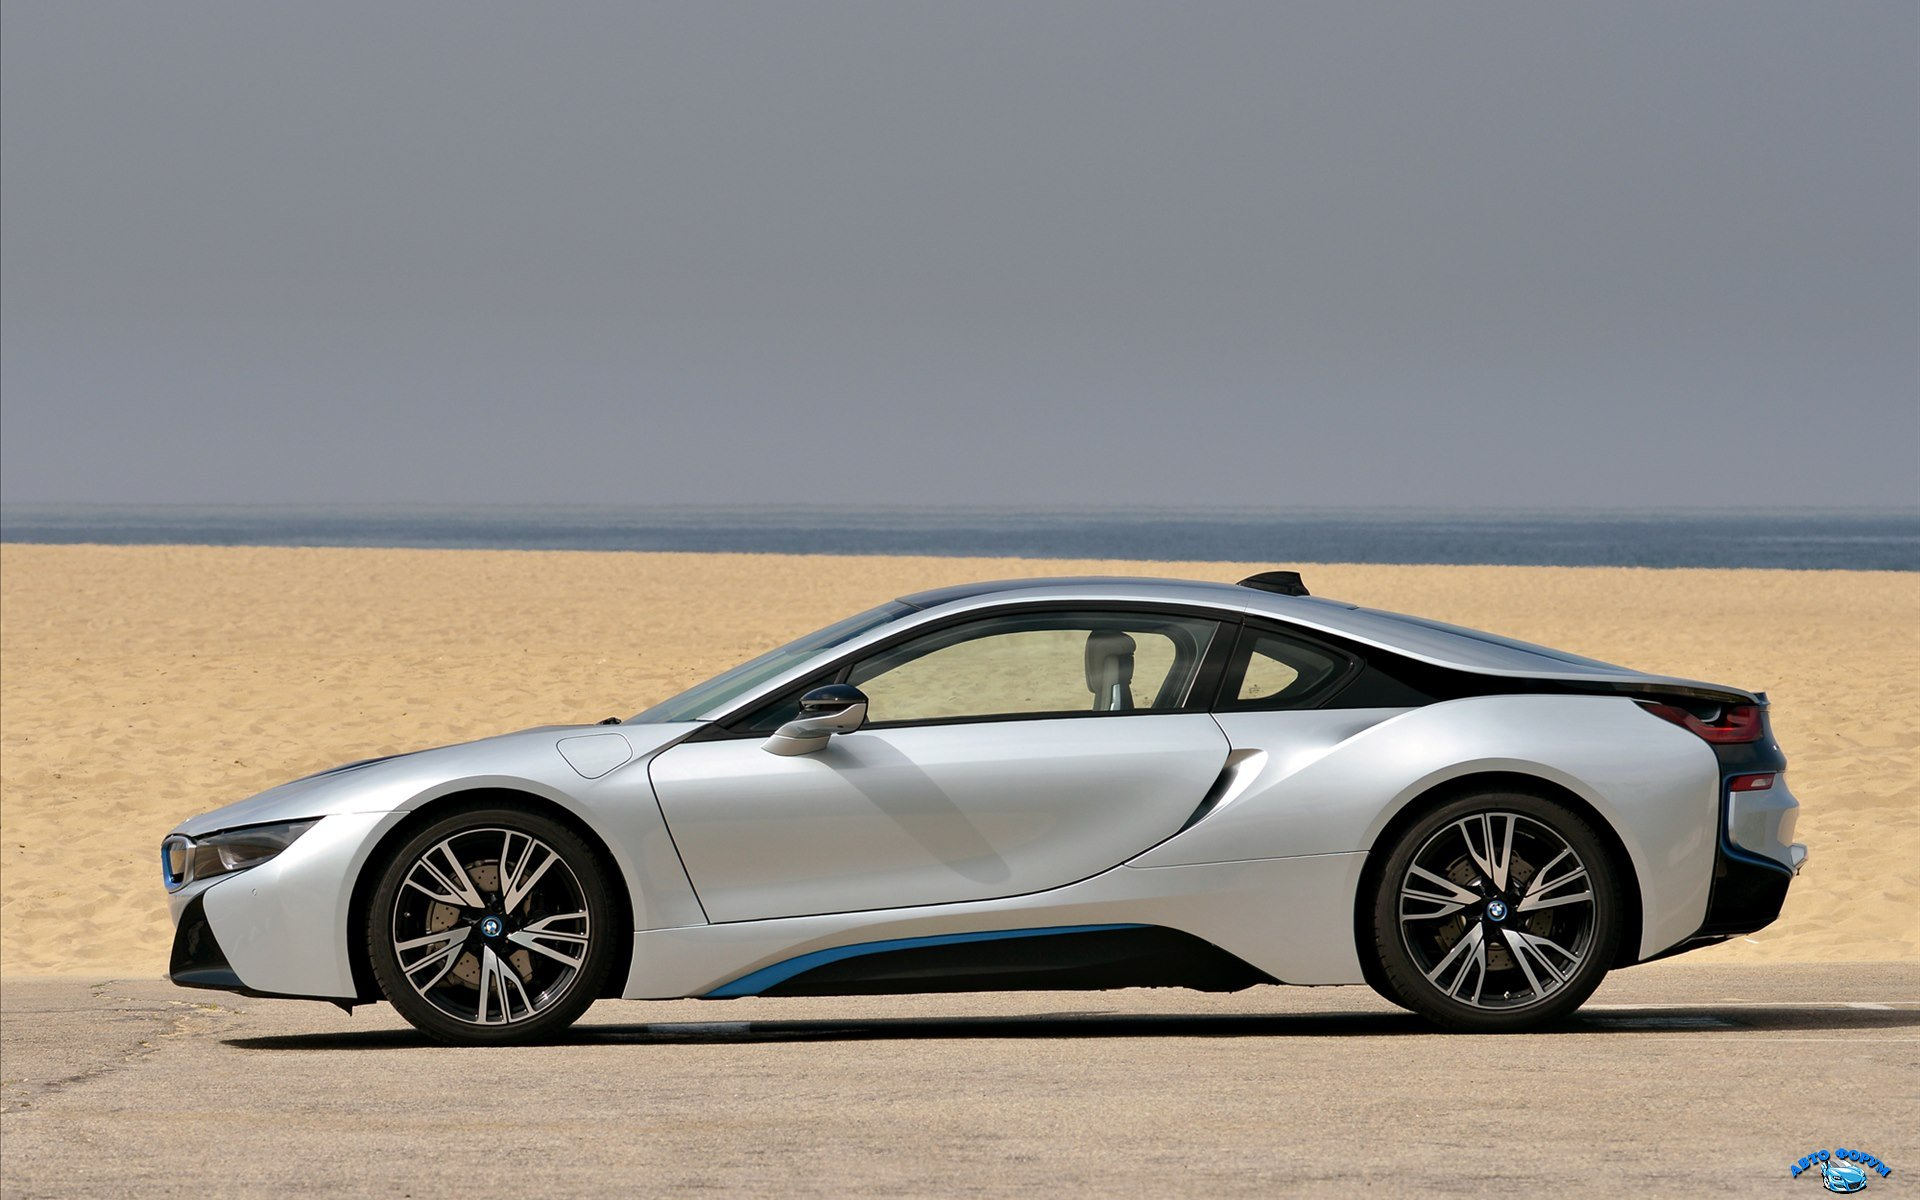 BMW-i8-2015-widescreen-82.jpg